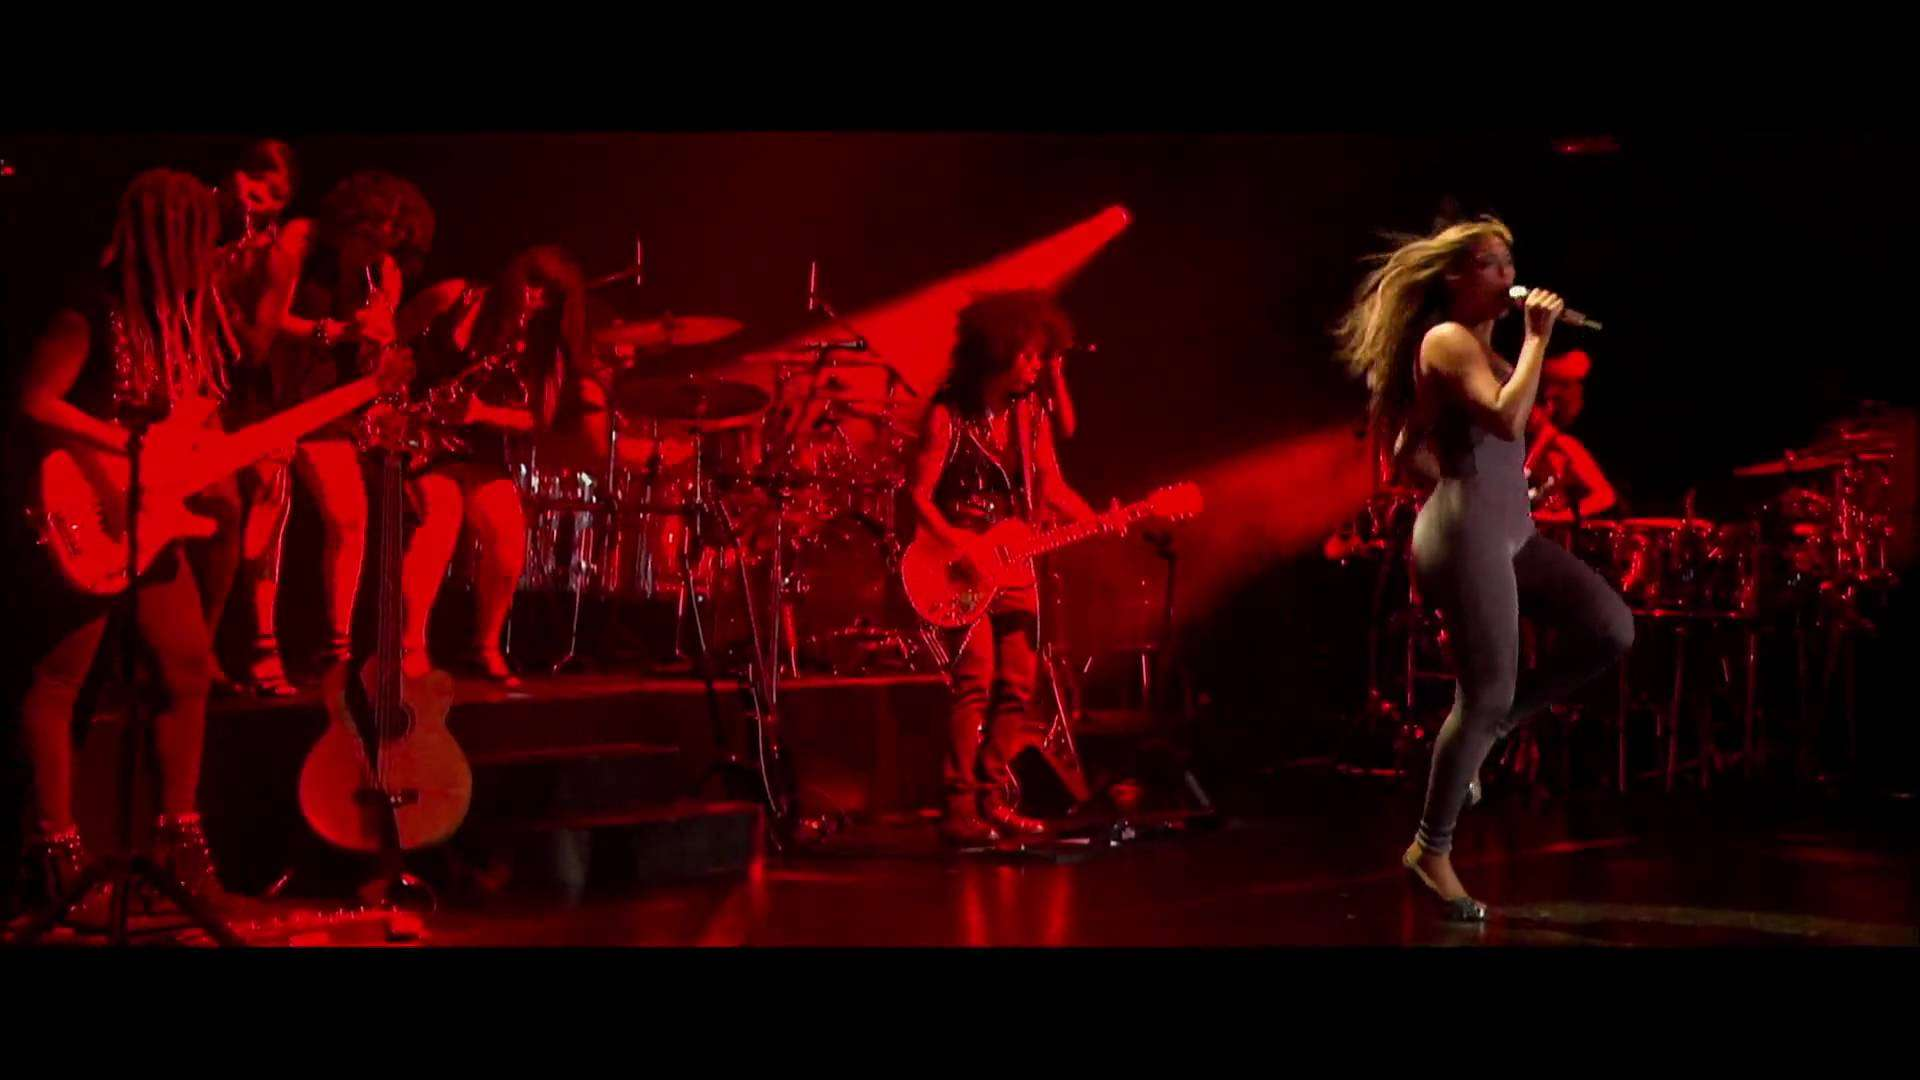 Beyonce - Deja Vu [L!ve] - YouTube